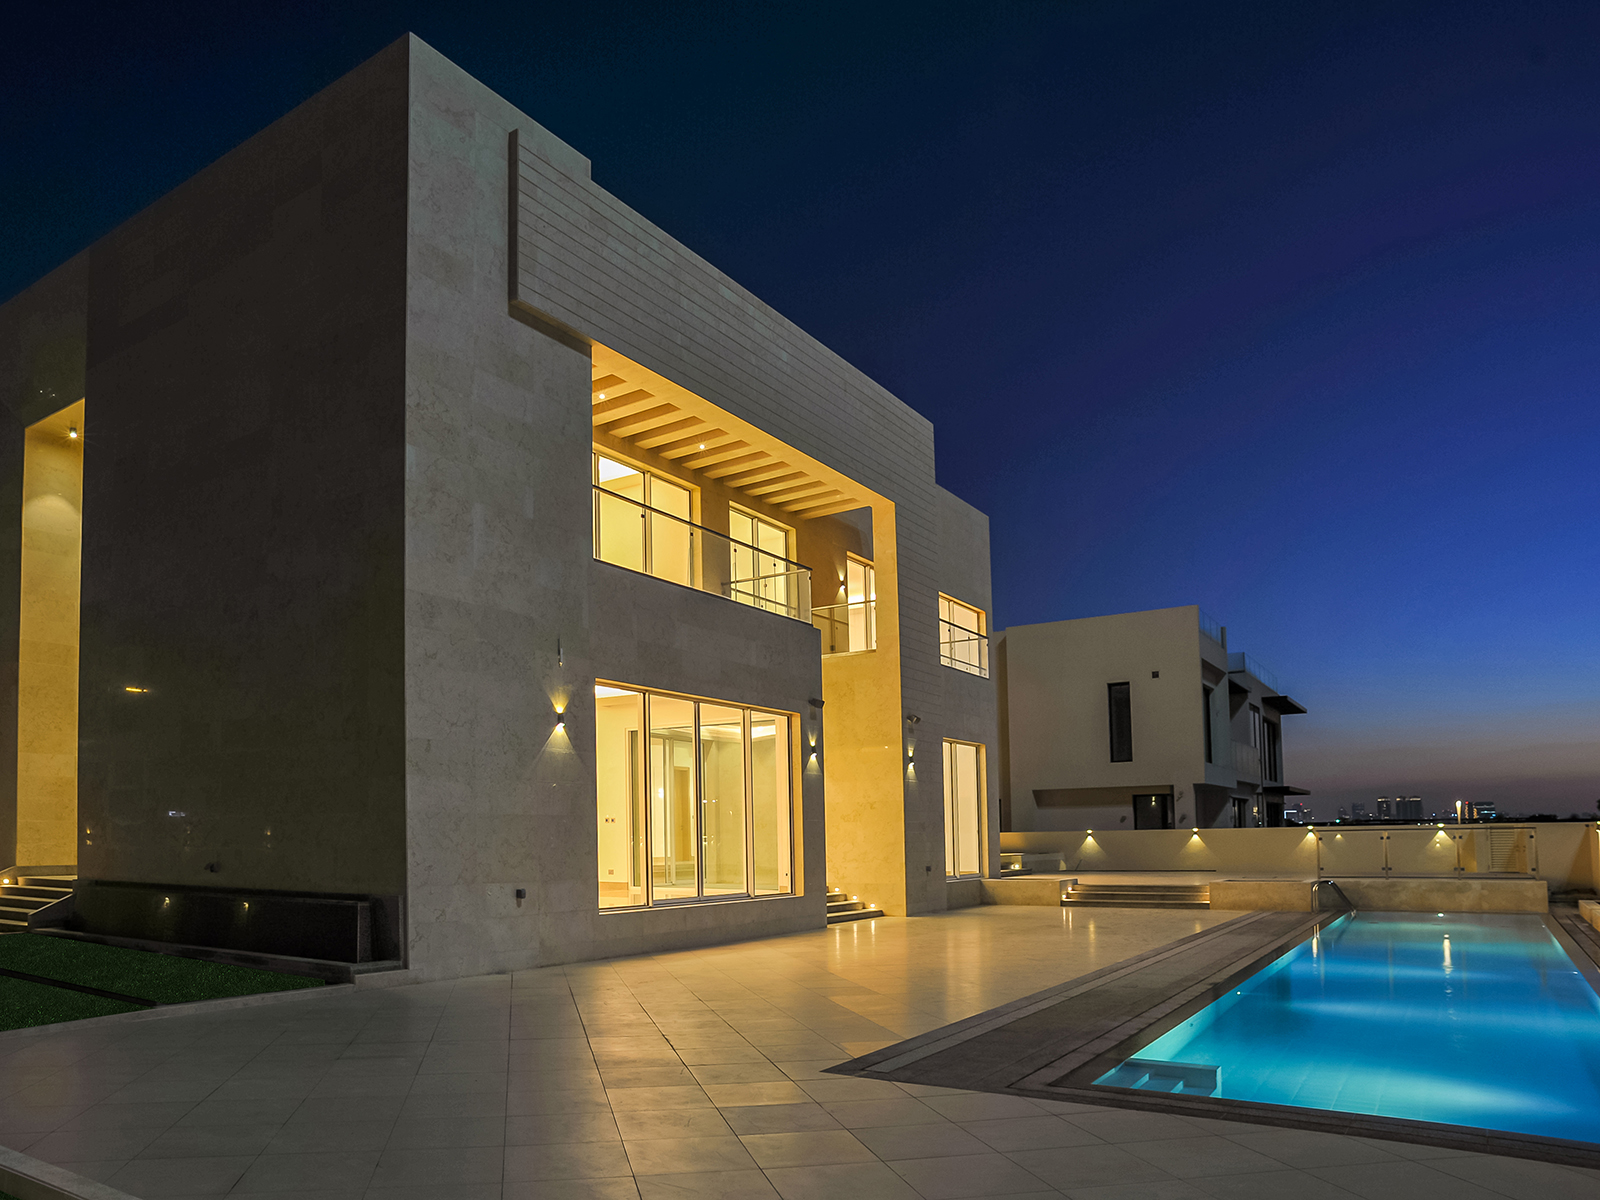 The outside view of a villa and pool at night